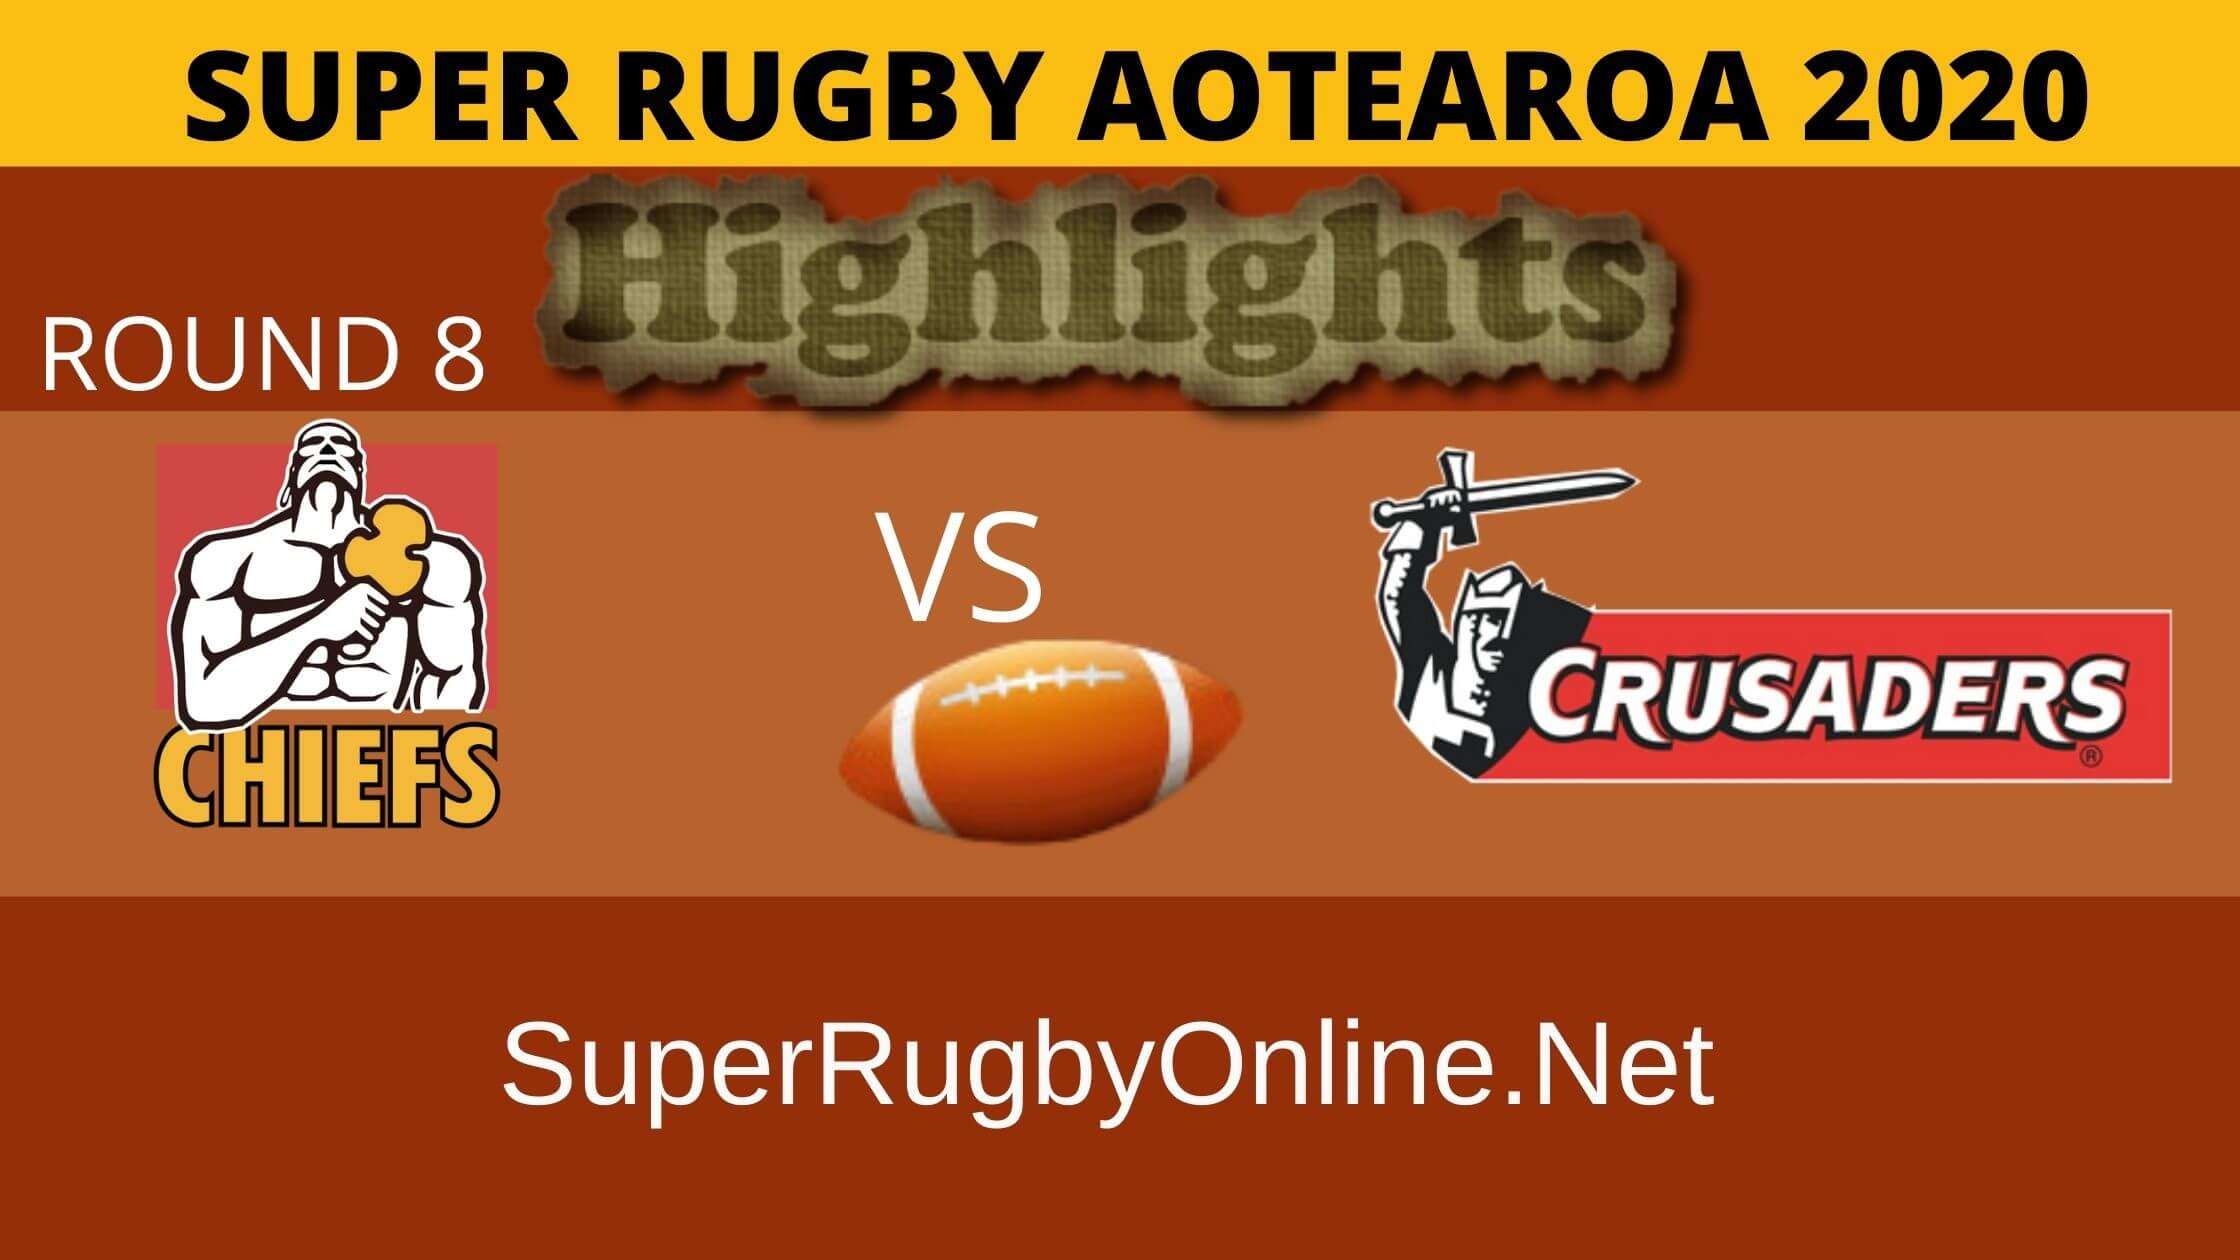 Chiefs Vs Crusaders Rd 8 Highlights 2020 Super Rugby Aotearoa